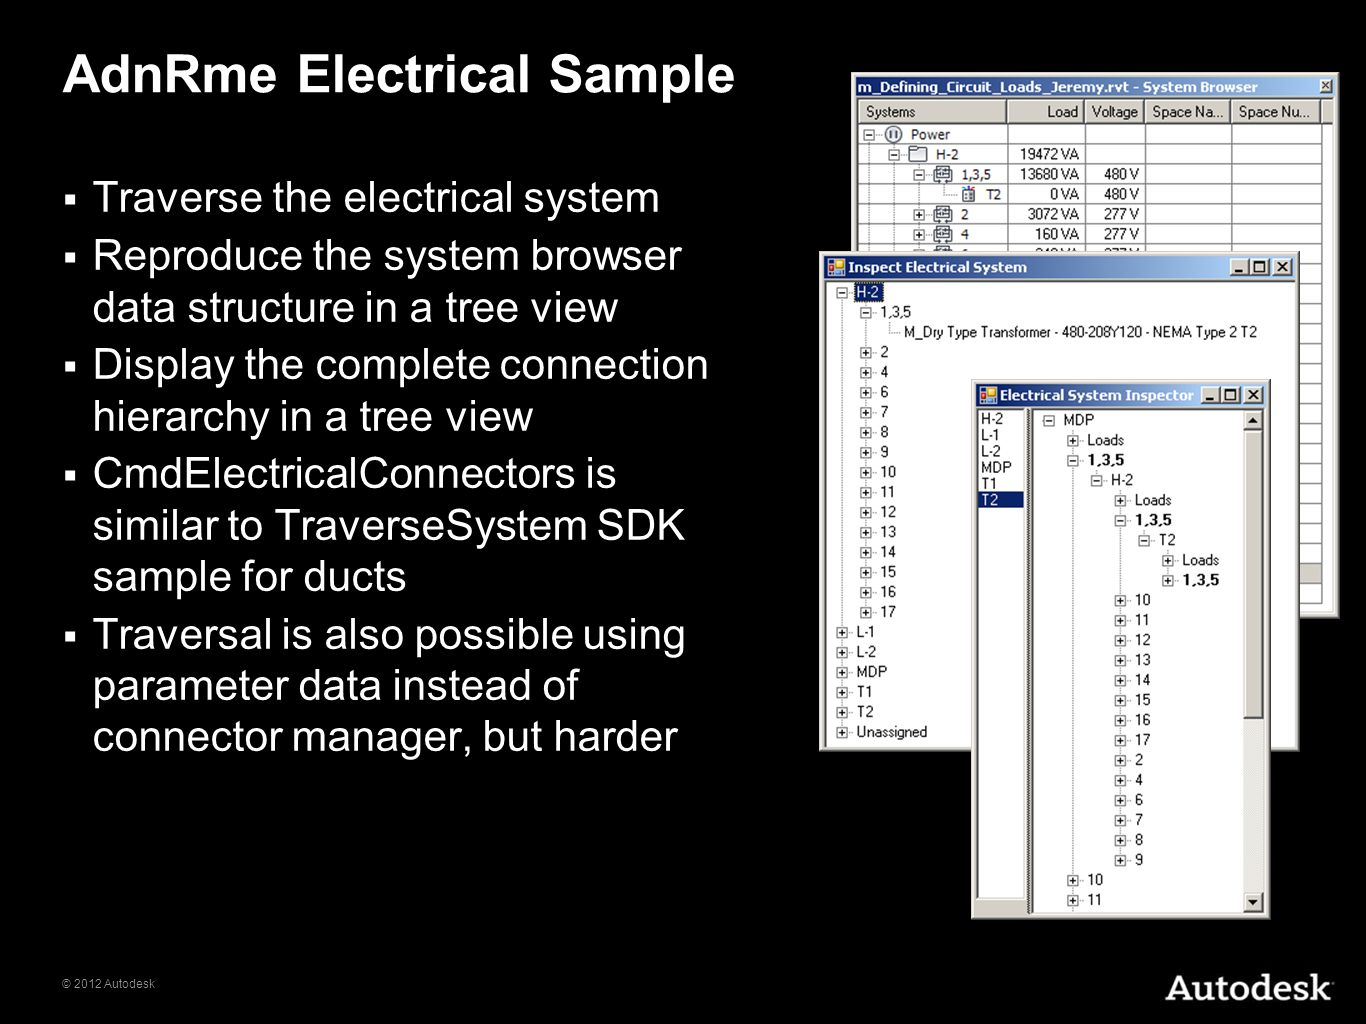 AdnRme Electrical Sample